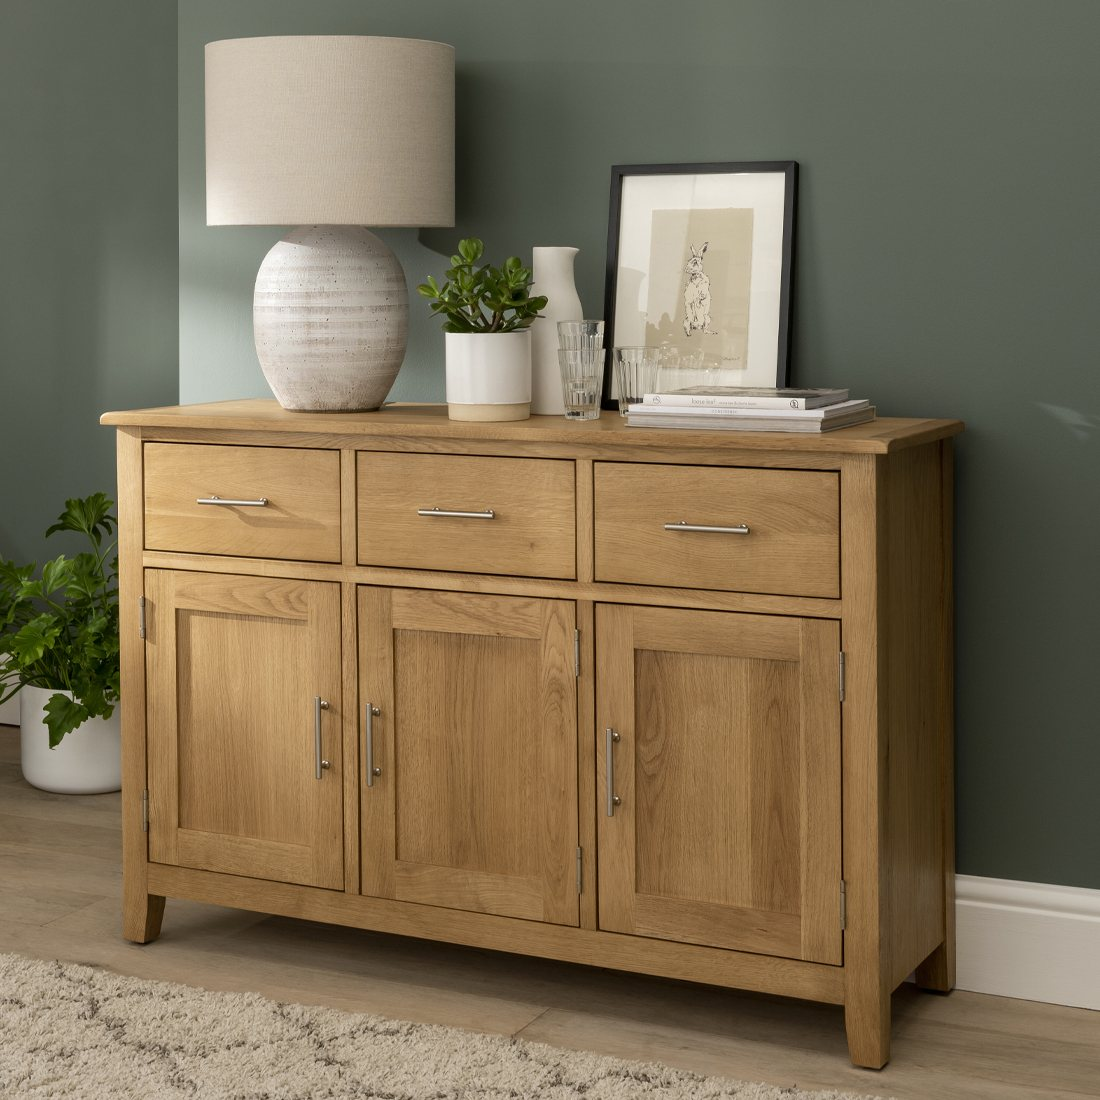 Sideboard Modern Oak City - Nebraska Modern Oak 3 Doors 3 Drawer Sideboard - Furniture World